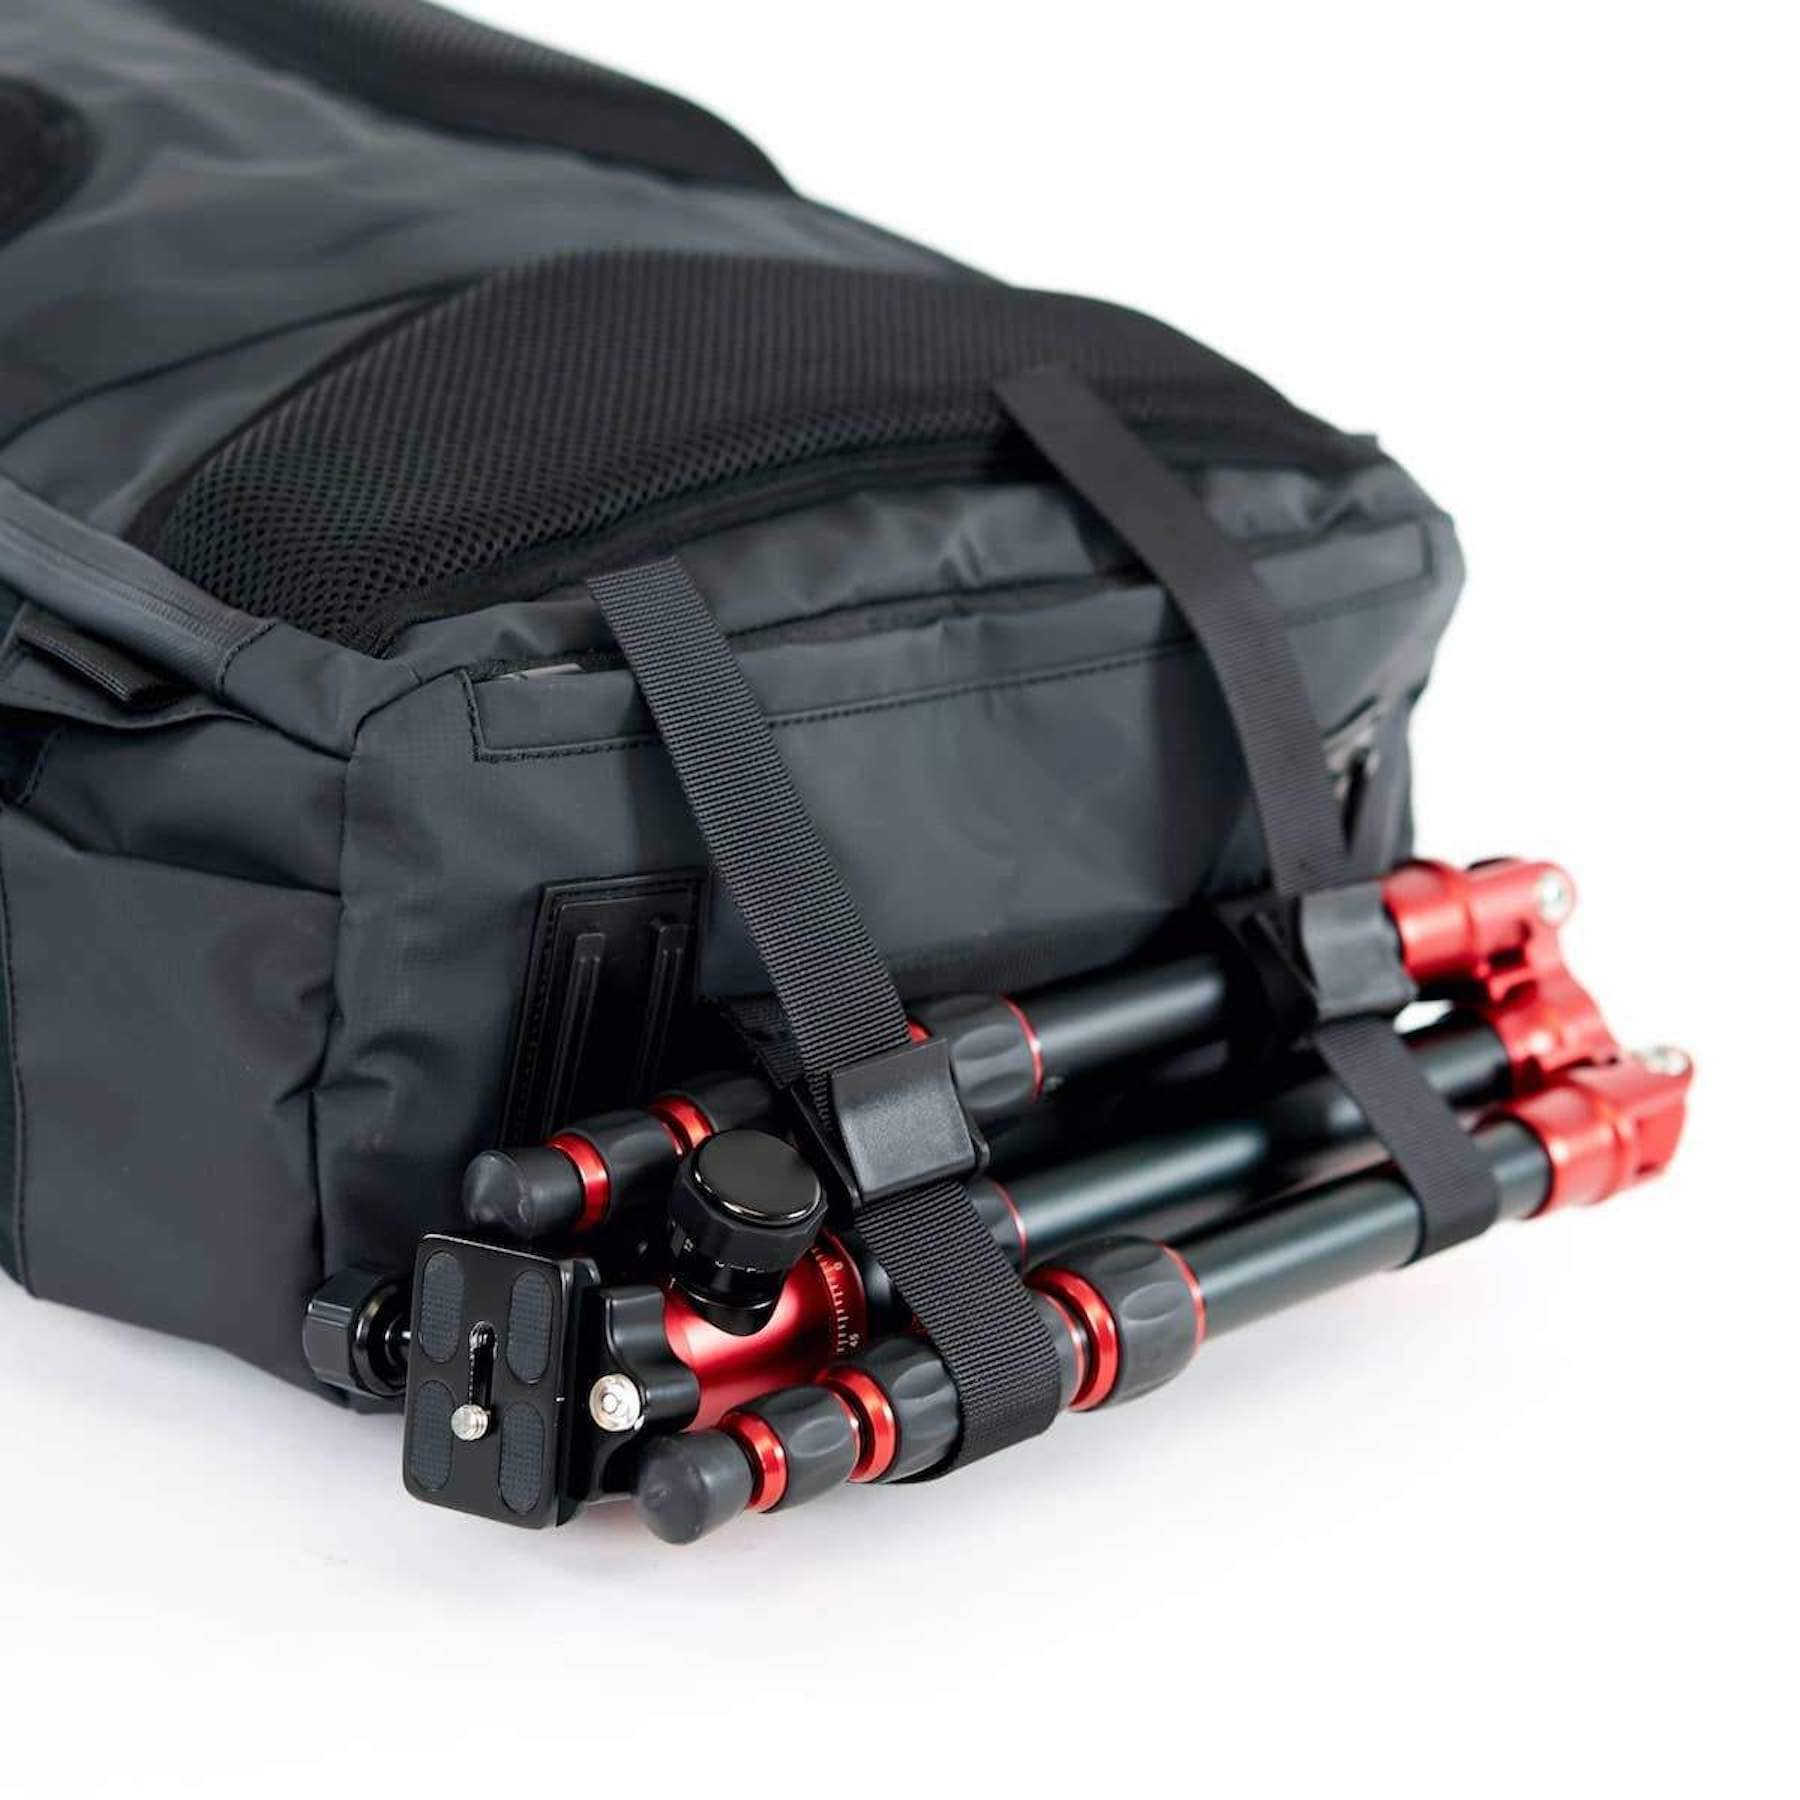 Best Sports Camera - Best Camera for Sports Photography - Tripod on Camera Bag